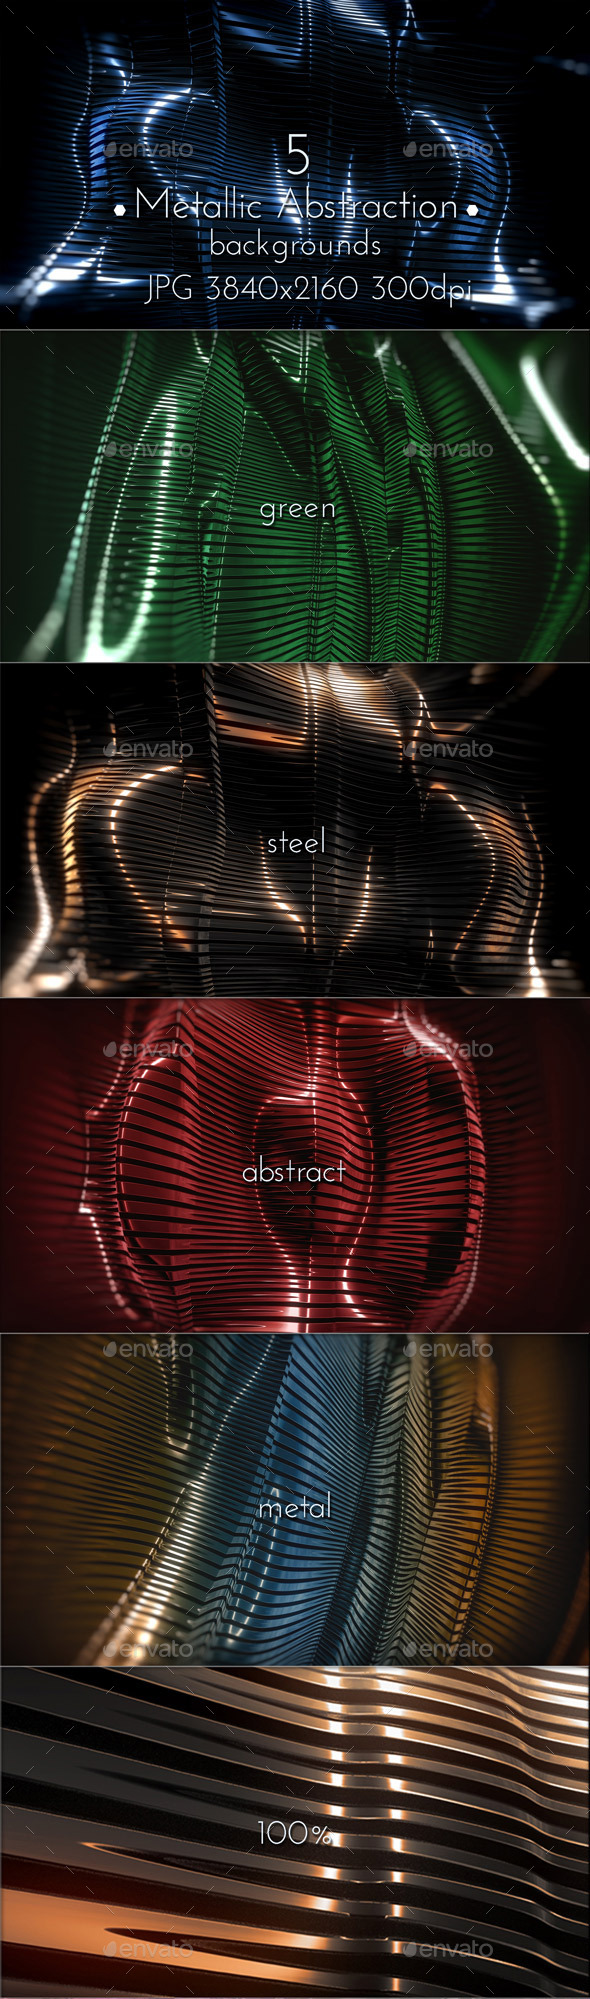 Metallic Abstraction 3D - Tech / Futuristic Backgrounds